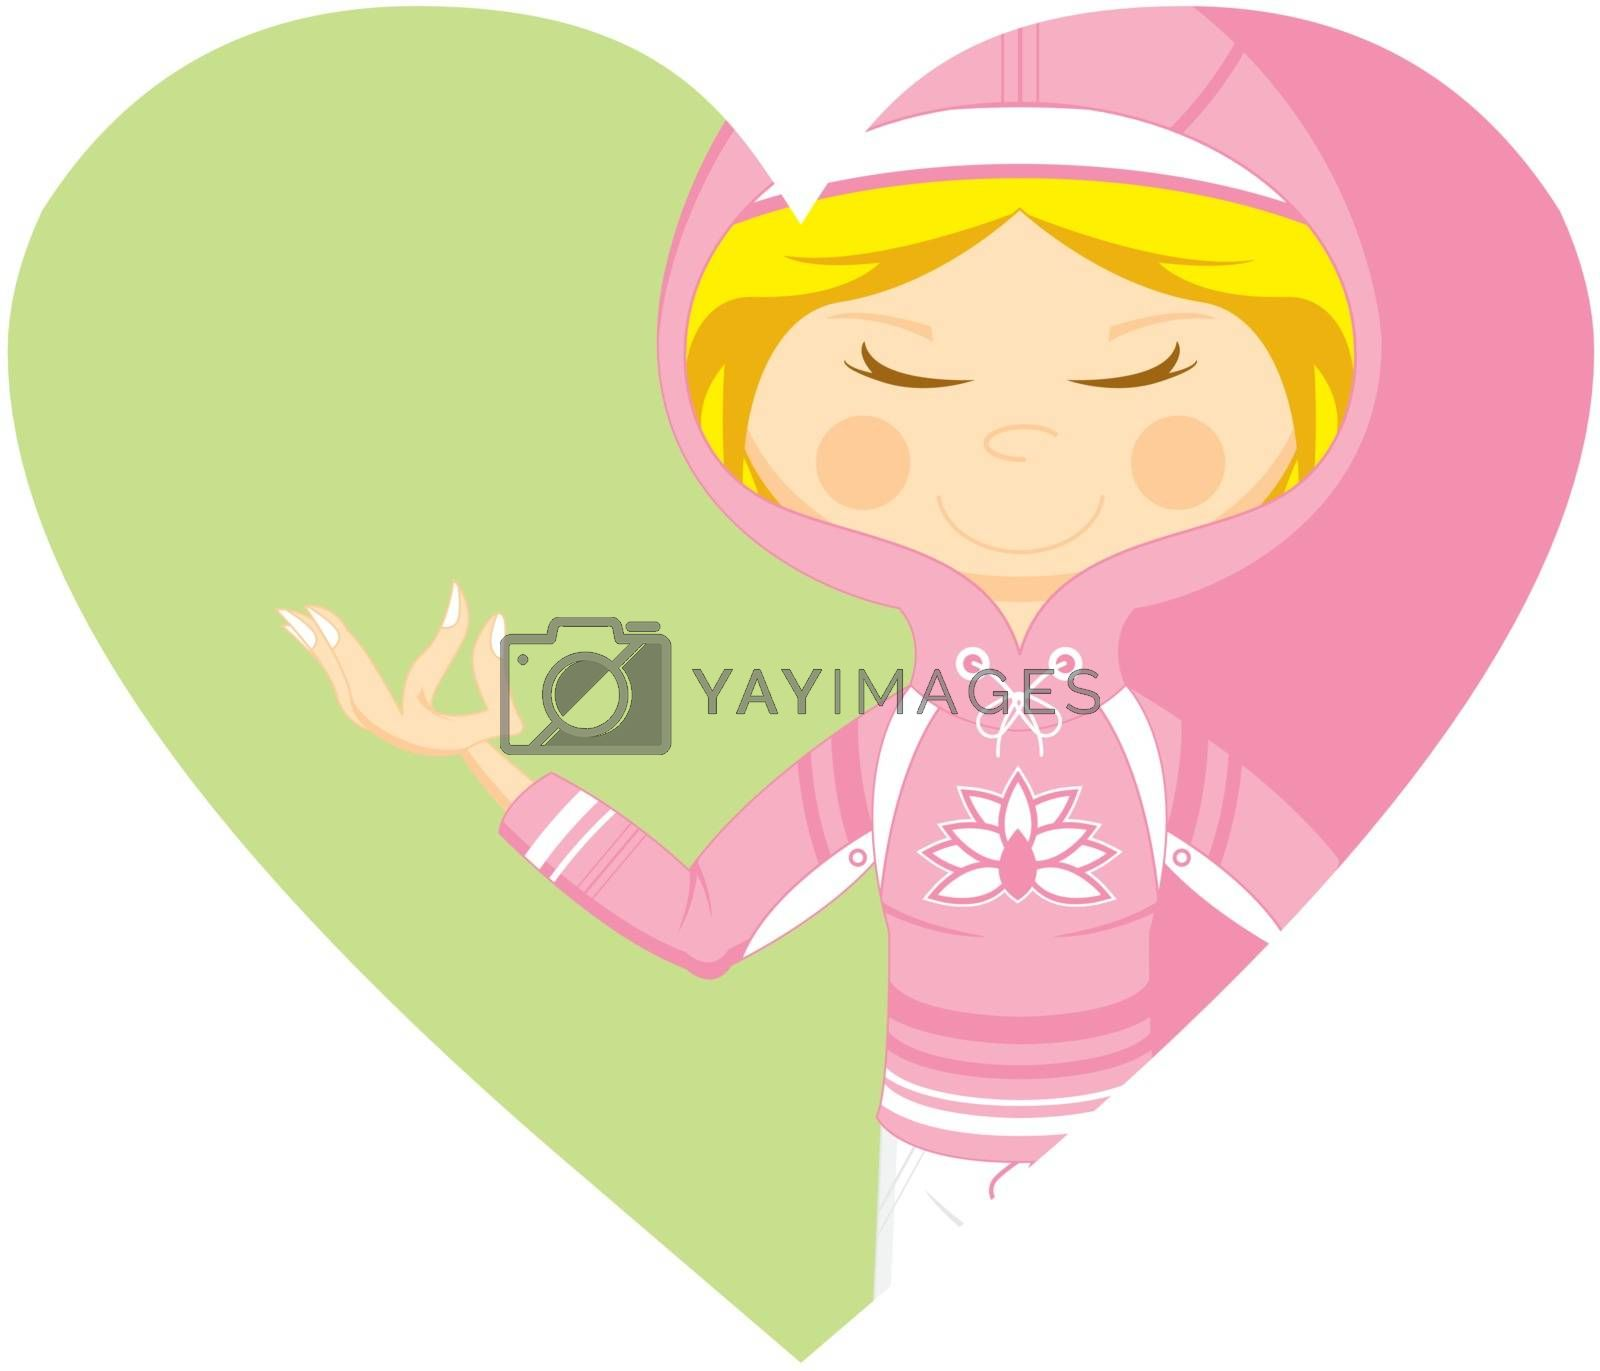 Cute Cartoon Yoga Girl wearing a Hooded Top on a Valentine Heart Vector Illustration by Mark Murphy Creative